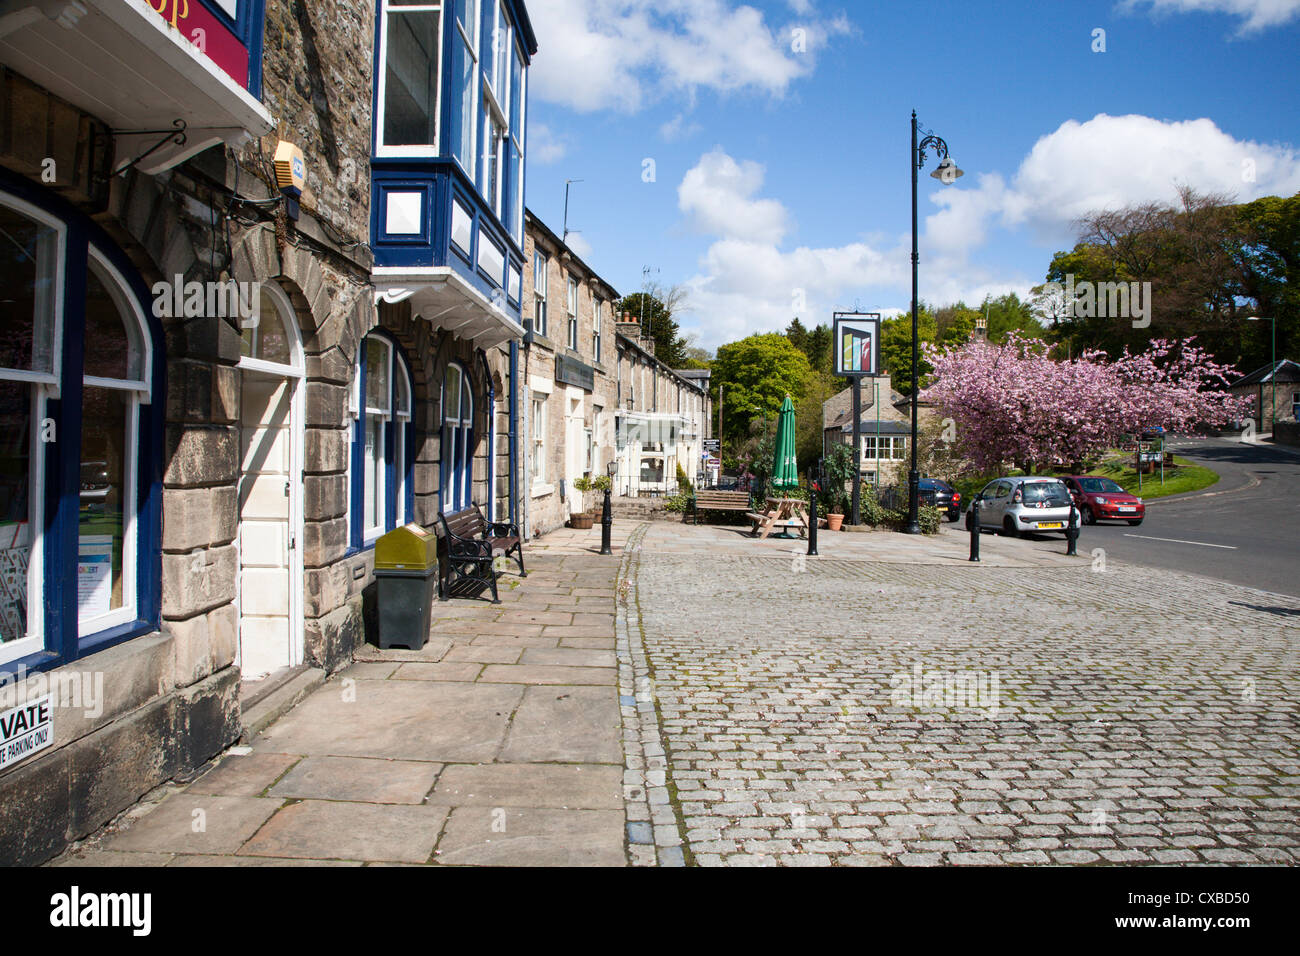 Middleton in Teesdale, County Durham, England, United Kingdom, Europe - Stock Image